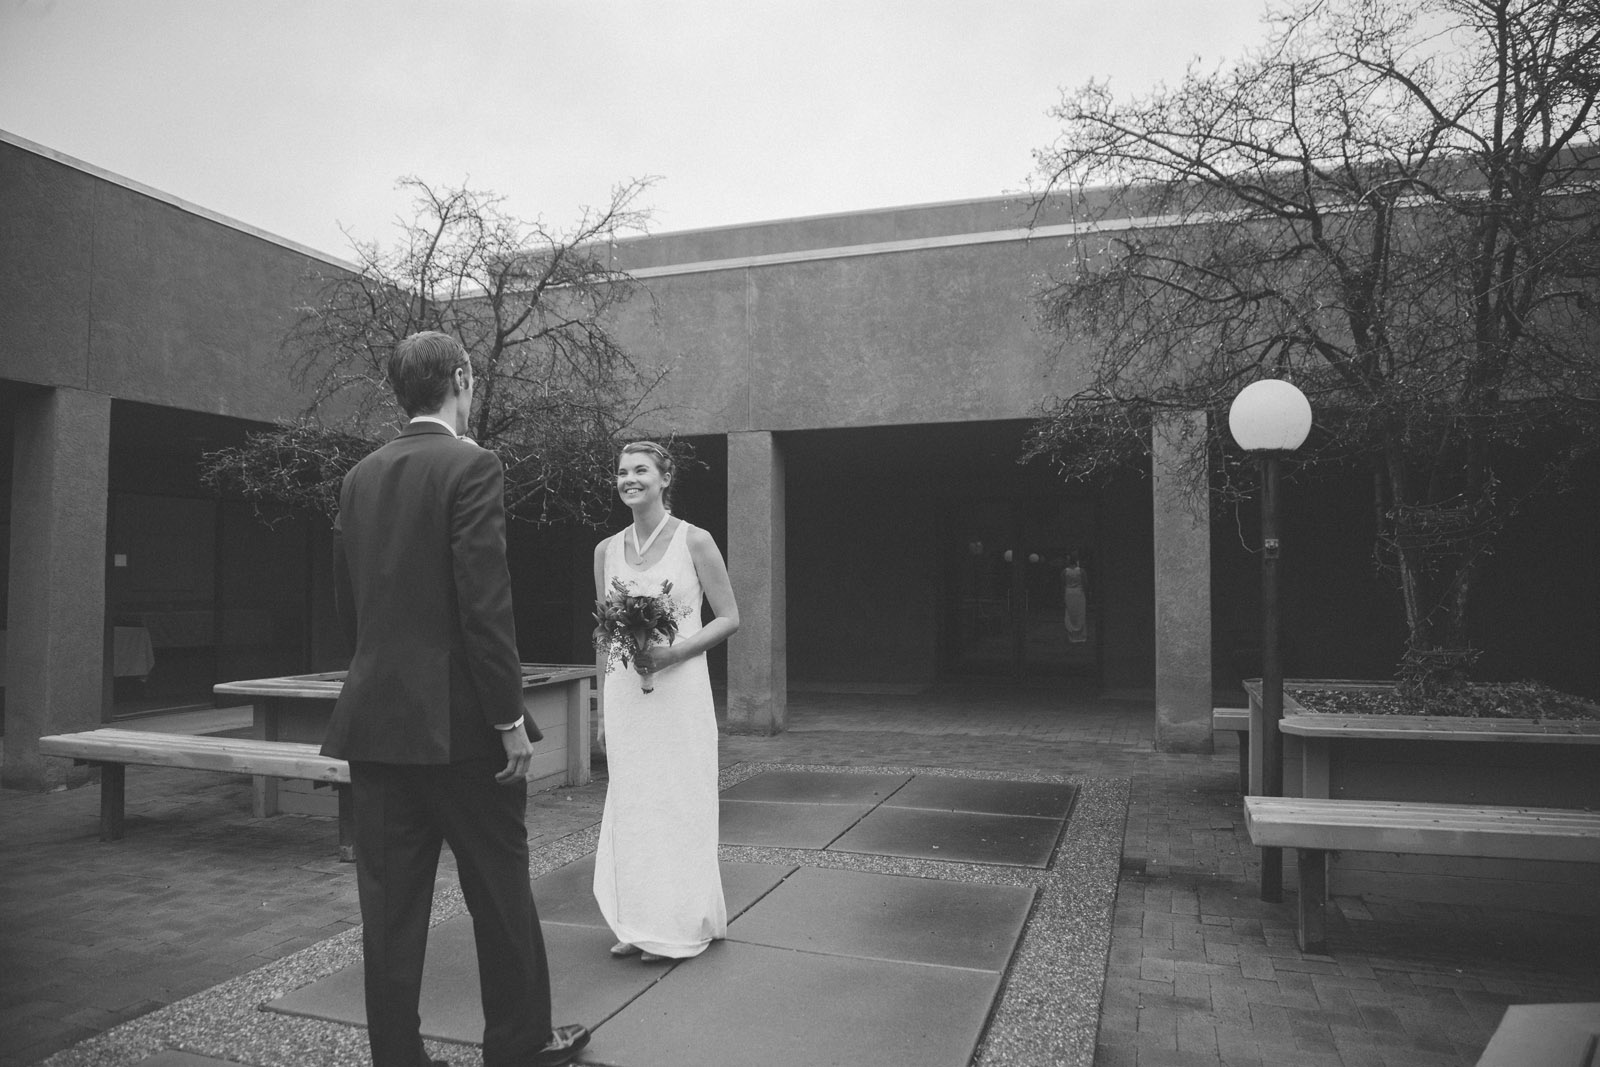 046-bride-and-groom-see-eachother-in-first-look-in-courtyard-before-the-ceremony-in-albuquerque-nm